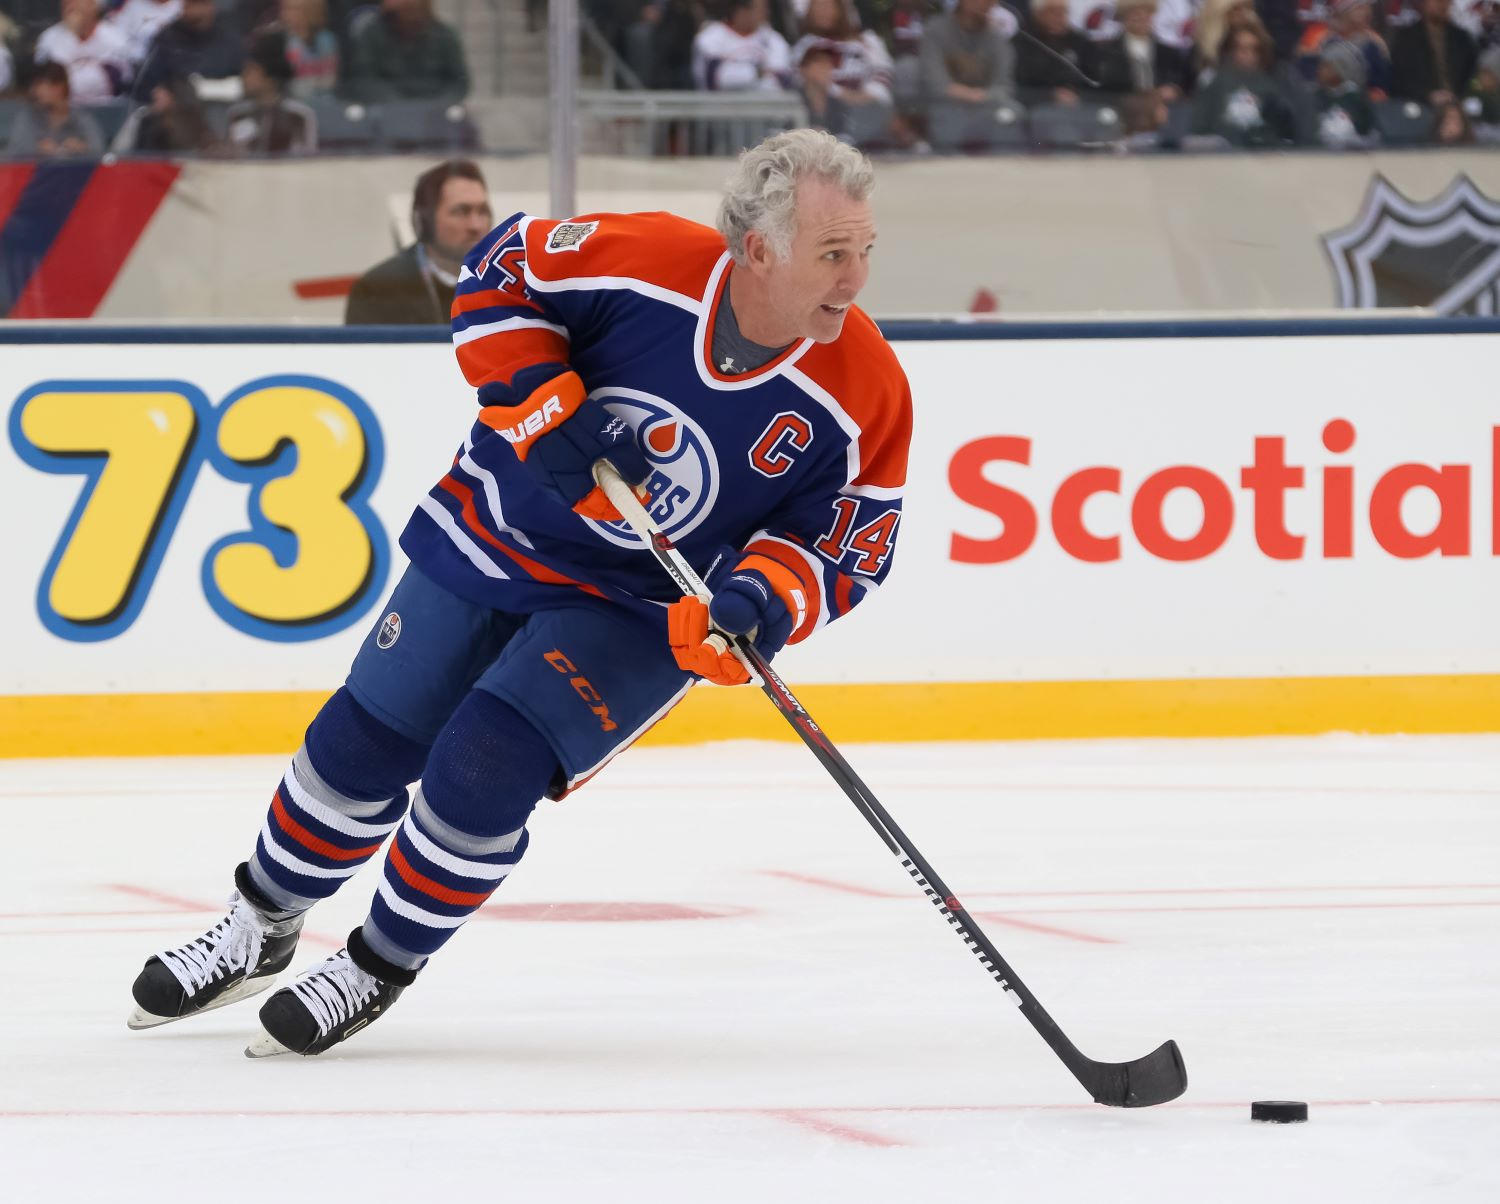 Craig MacTavish's NHL Career and Life Changed Forever When He Killed a Woman By Committing a 'Fatal Mistake'